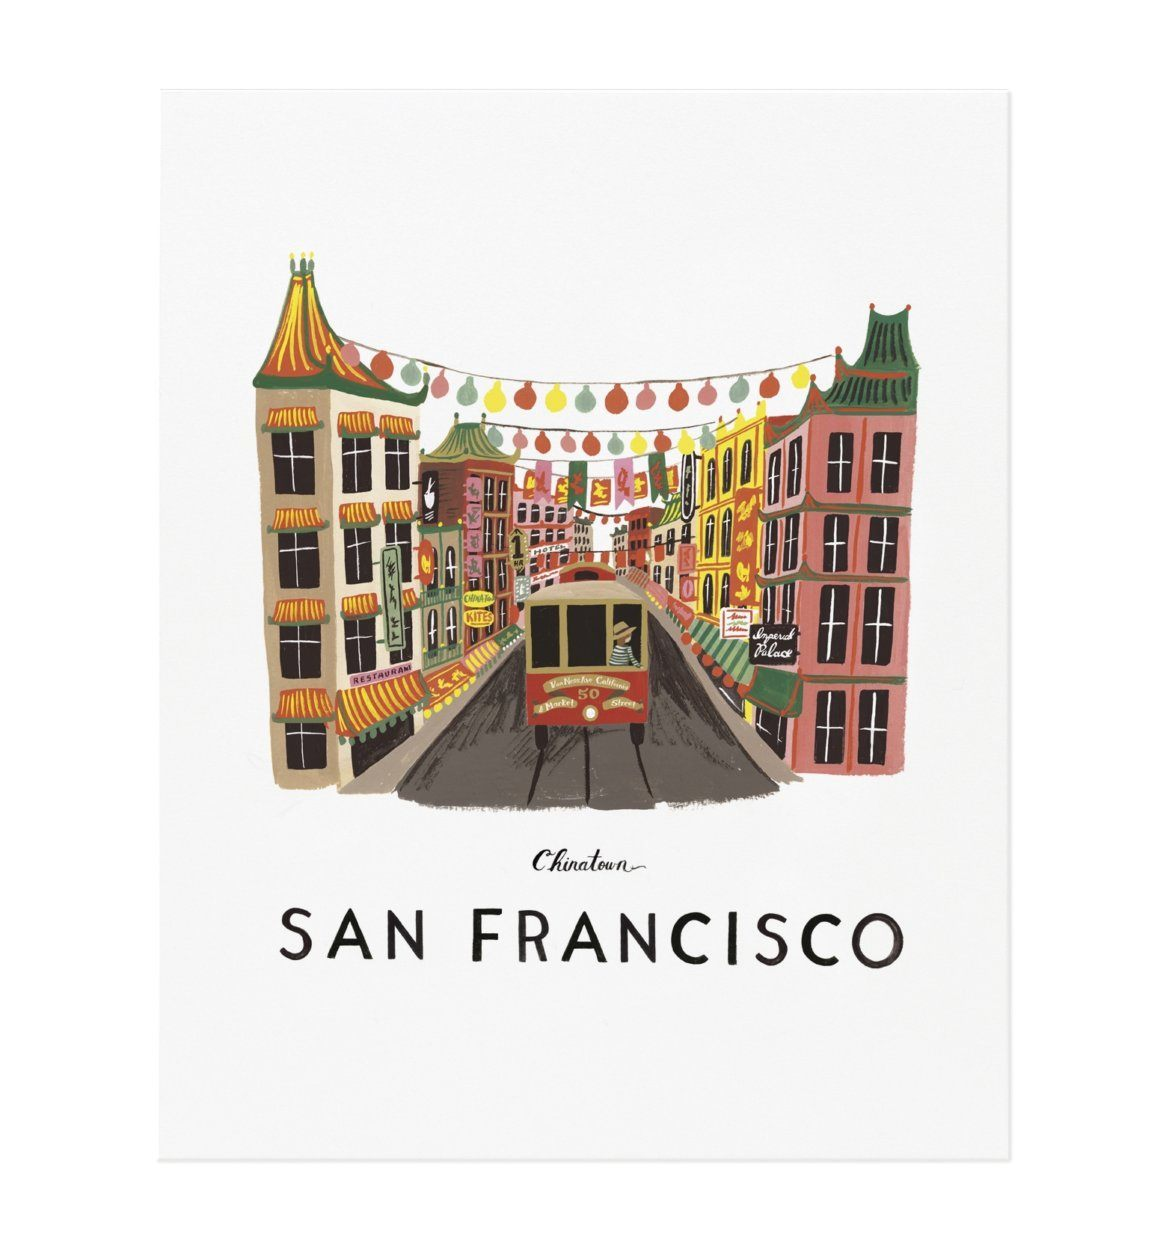 This photo provided by Rifle Paper Co. shows a gouache painting by Anna Bond of Chinatown in San Francisco. The Winter Park Florida-based graphic designer, illustrator and co-founder of Rifle Paper Co., Bond is well-known for the charming floral illustrations that the company offers as stationery, wallpaper, home décor and fashion accessories. A series of gouache paintings she's done of destinations around the U.S. and beyond make charming wall art; Charleston, Chicago, New York and San Francisco are some of the cities in the collection. (Rifle Paper Co. via AP)